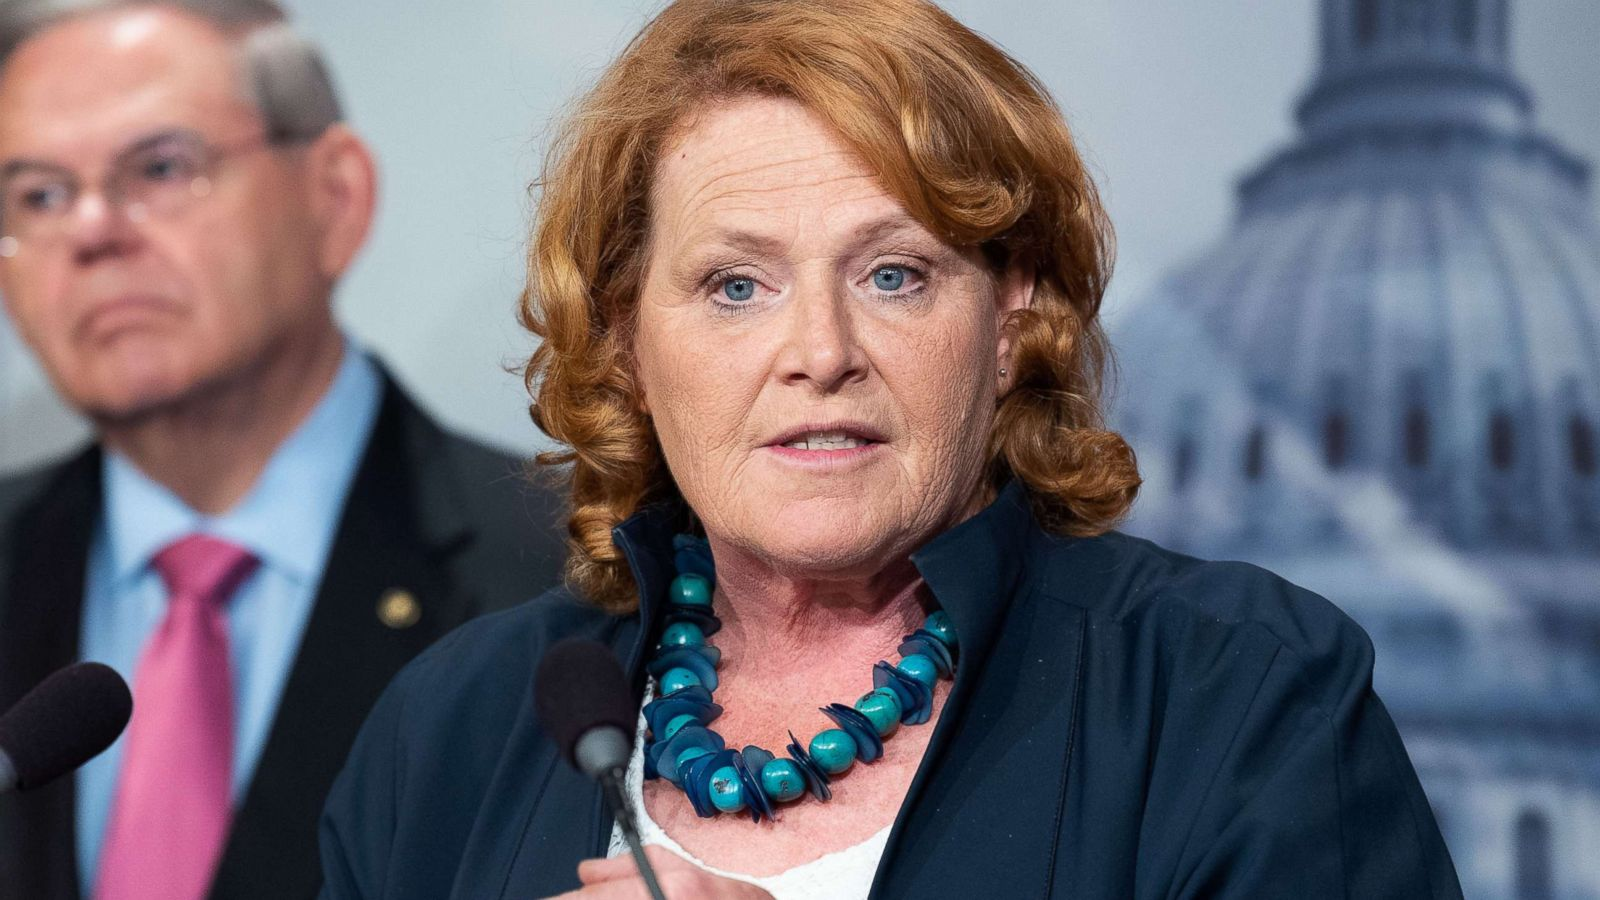 Heidi Heitkamp wearing blue suit, white top and blue necklace in front of U.S. Capitol backdrop